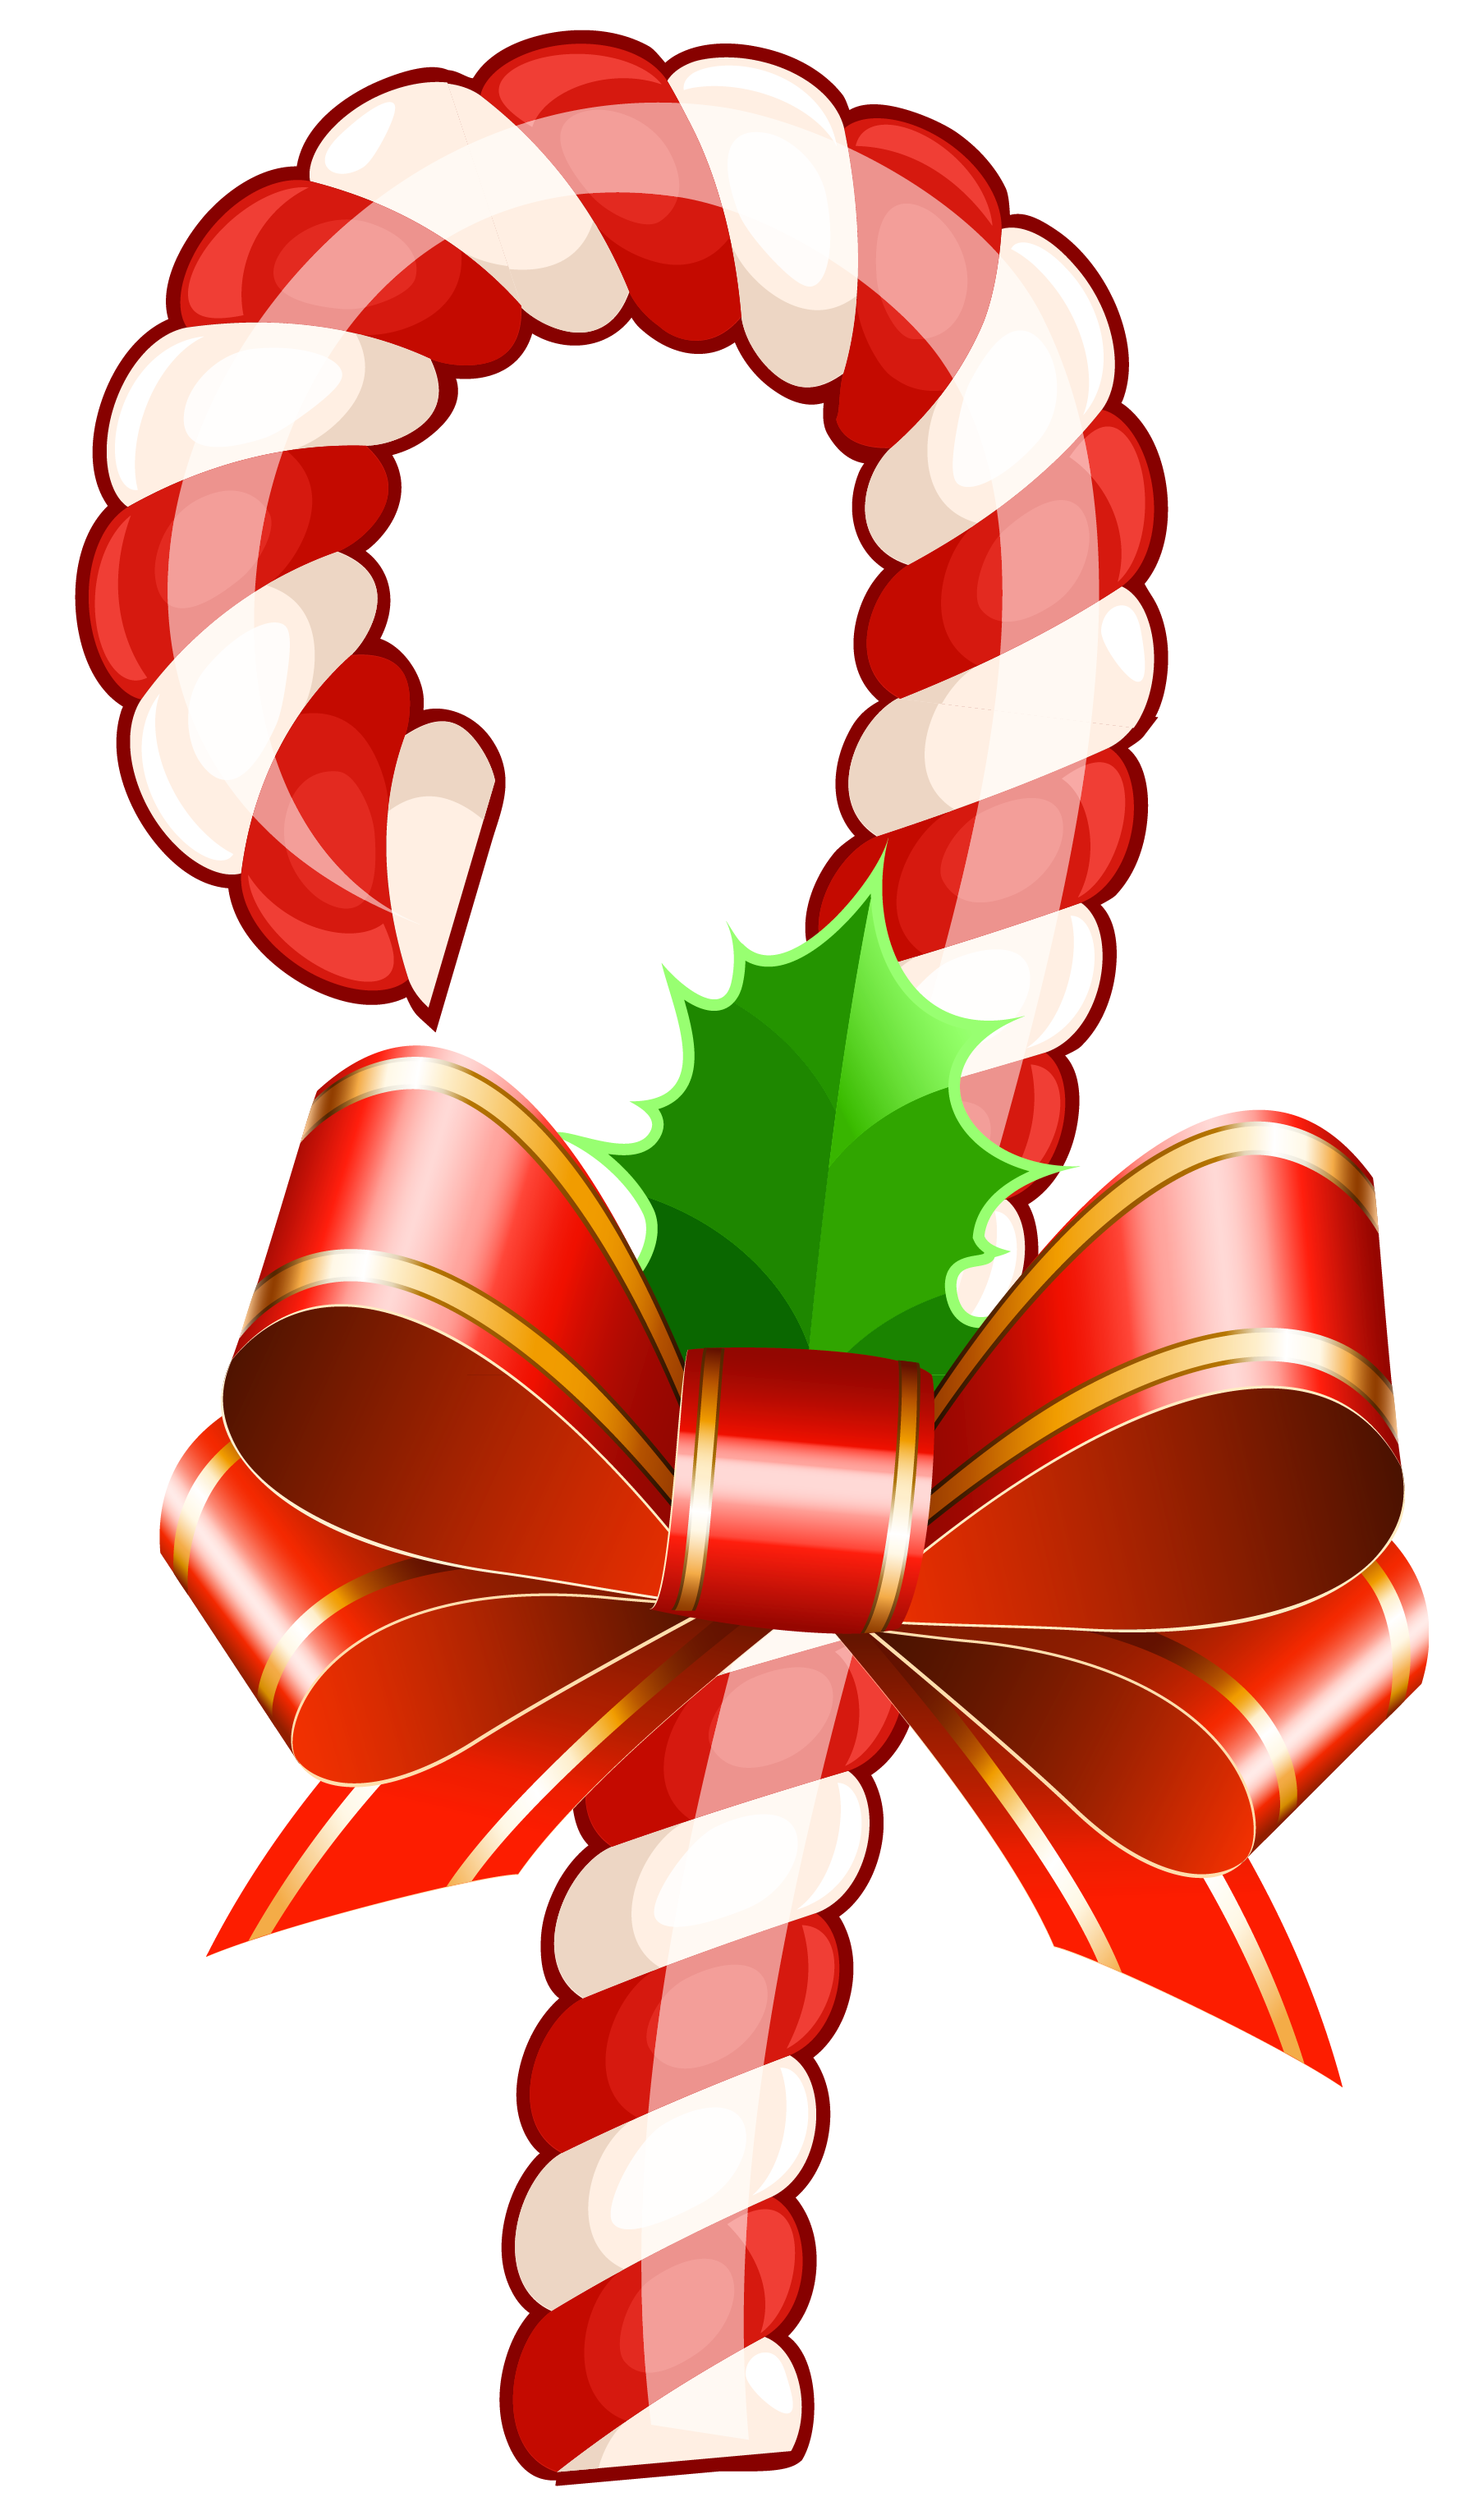 1789x3069 Collection Of Candy Cane Christmas Tree Clipart High Quality